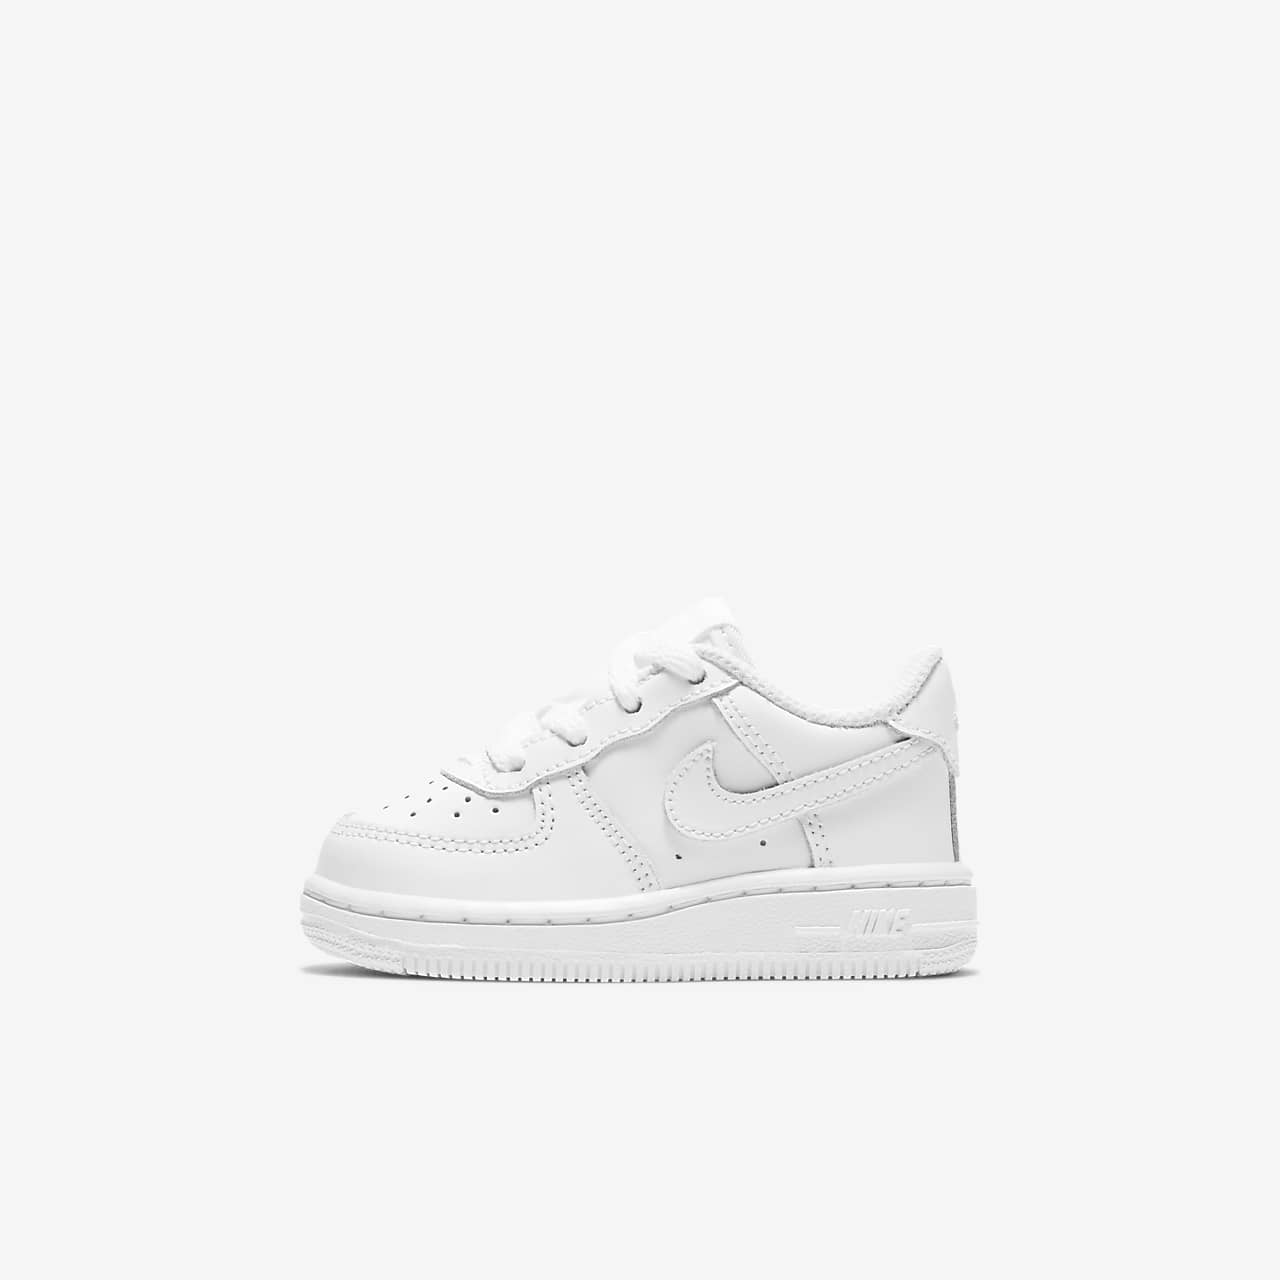 Nike Air Force 1 06 – sko til babyer/småbørn